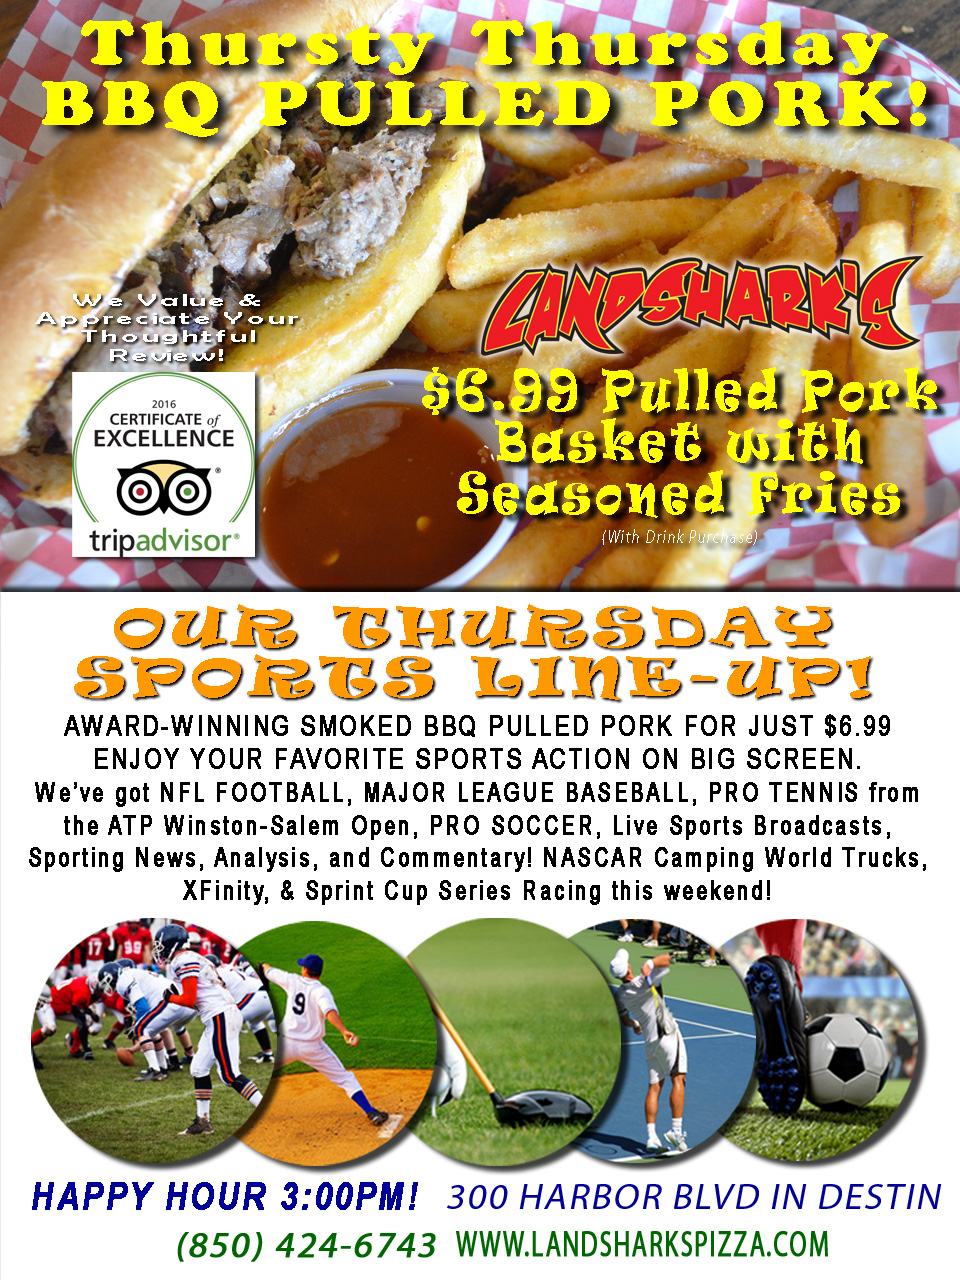 Destin FL Smoked BBQ Pulled Pork Basket Special Thursdays Landsharks 08-25-16